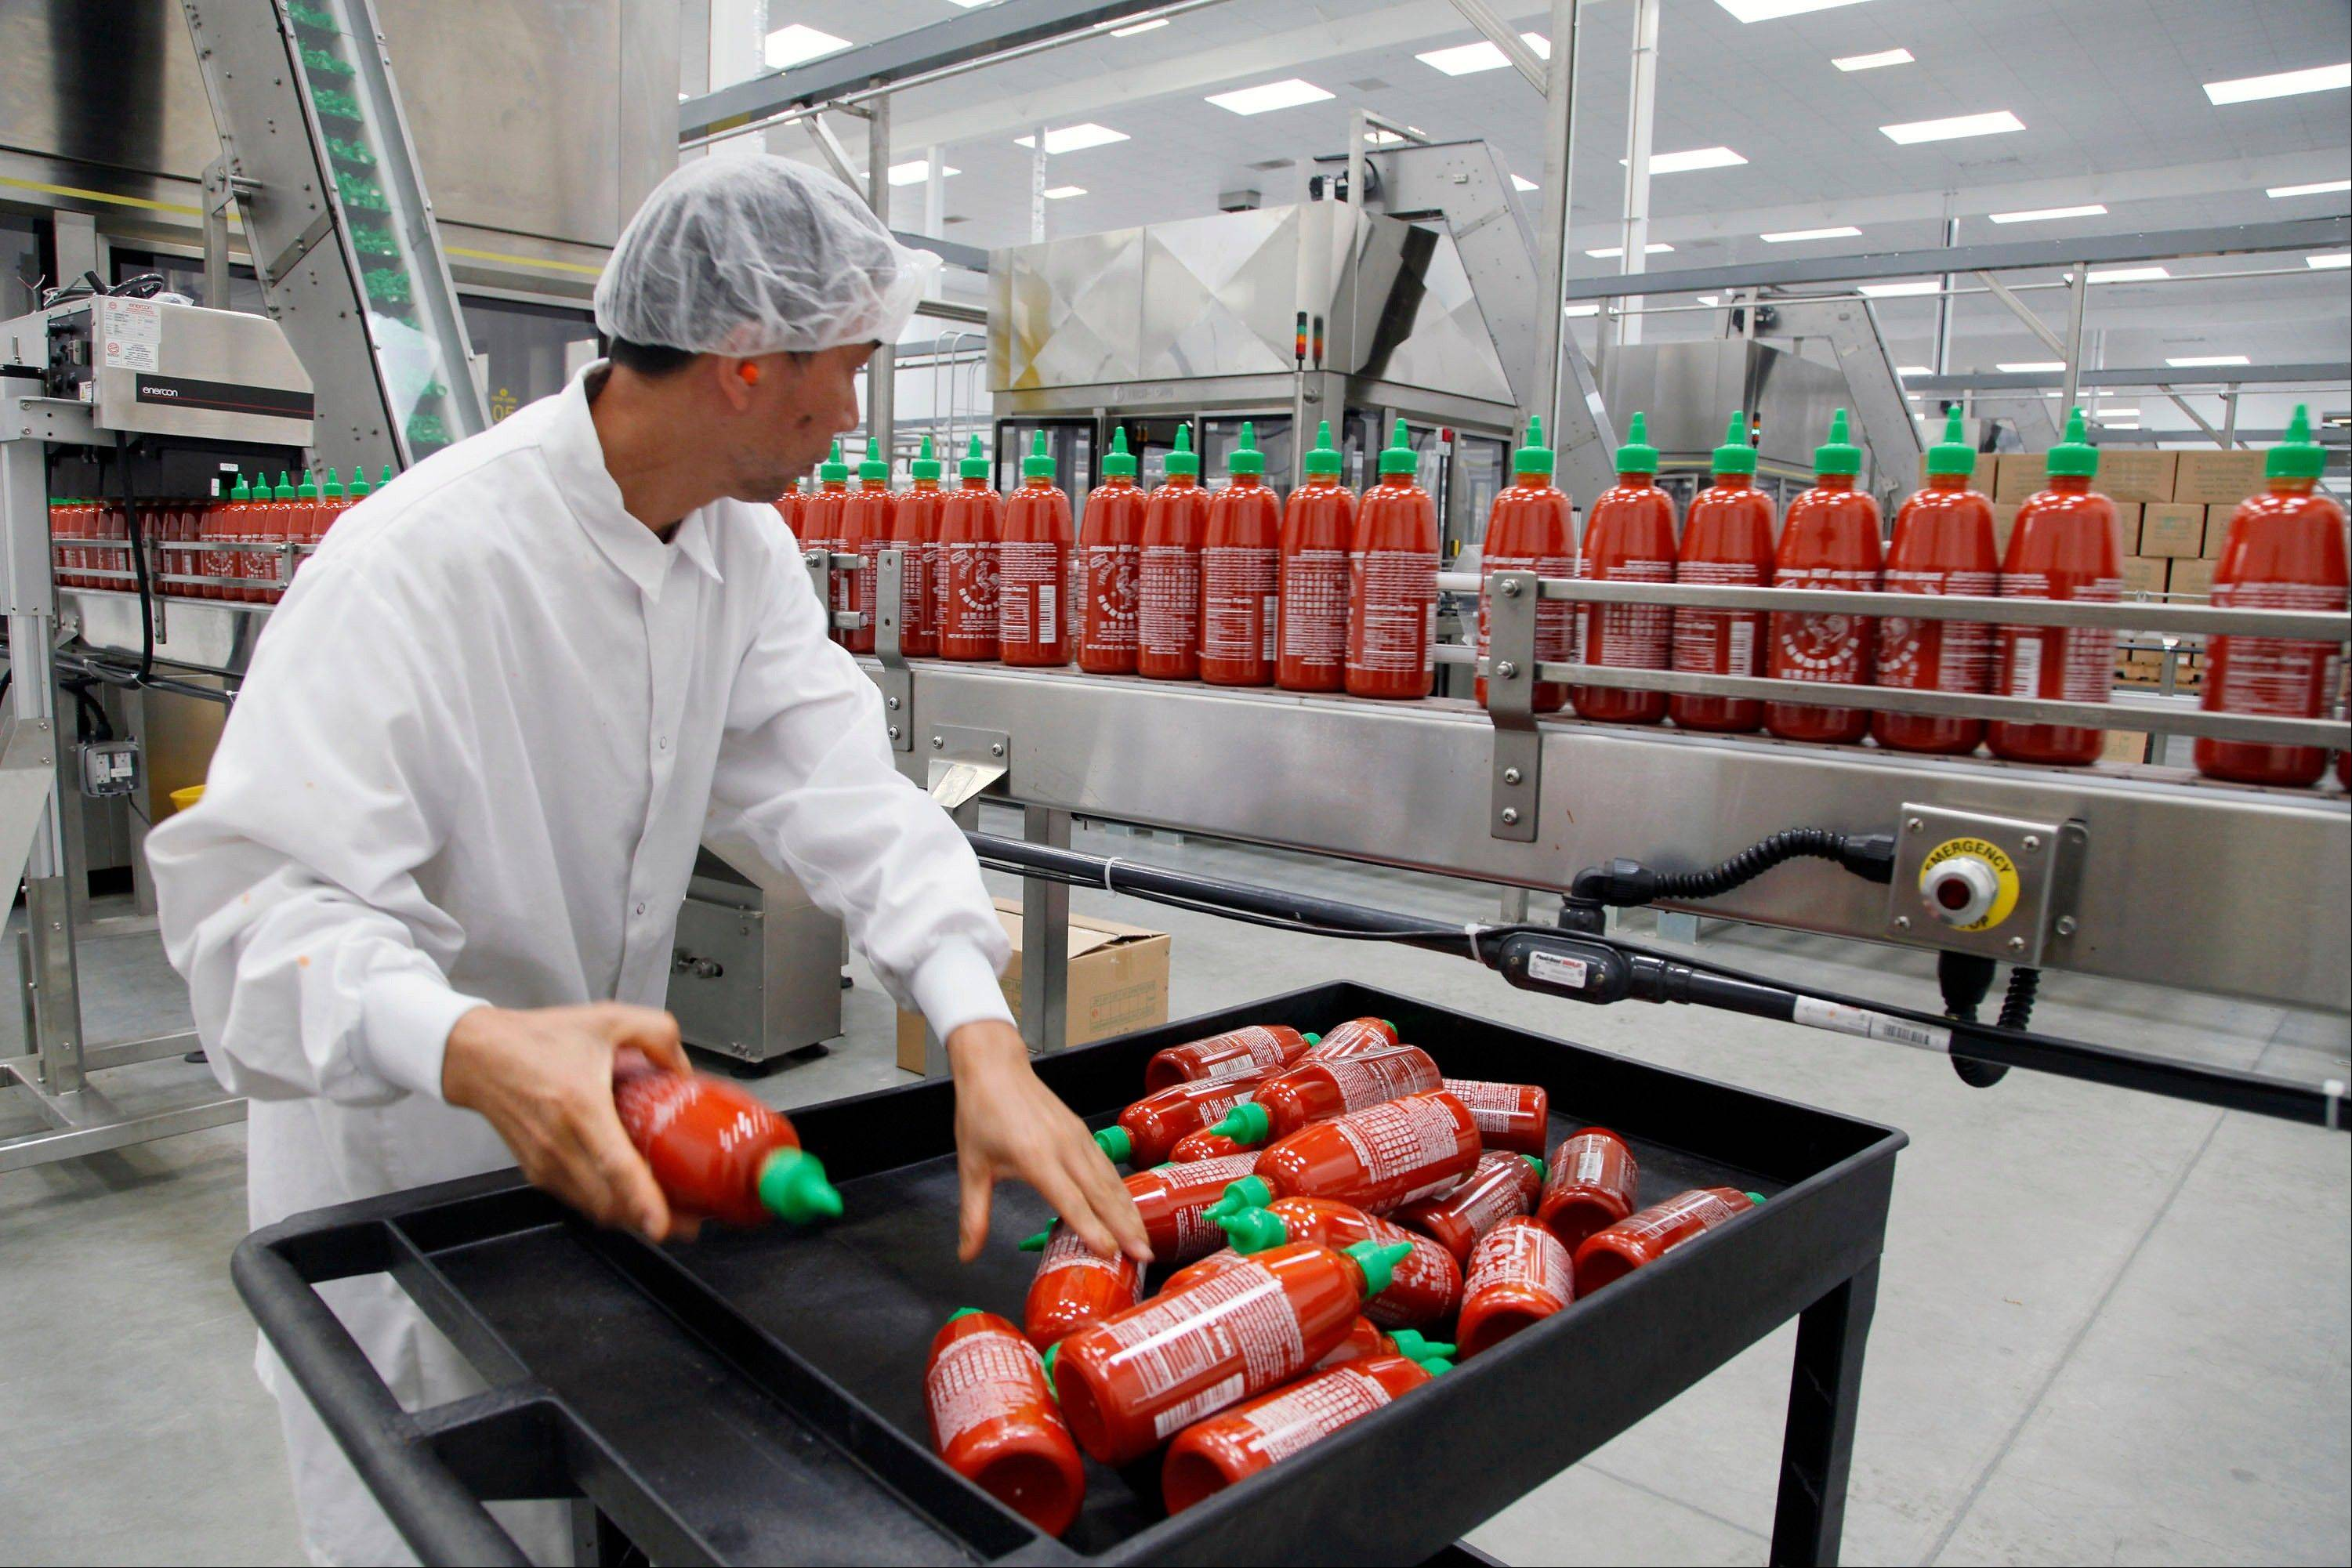 Sriracha chili sauce is produced at the Huy Fong Foods factory in Irwindale, Calif. The Commerce Department reported Friday that high unemployment and weak wage increases have made it difficult for businesses to raise prices.